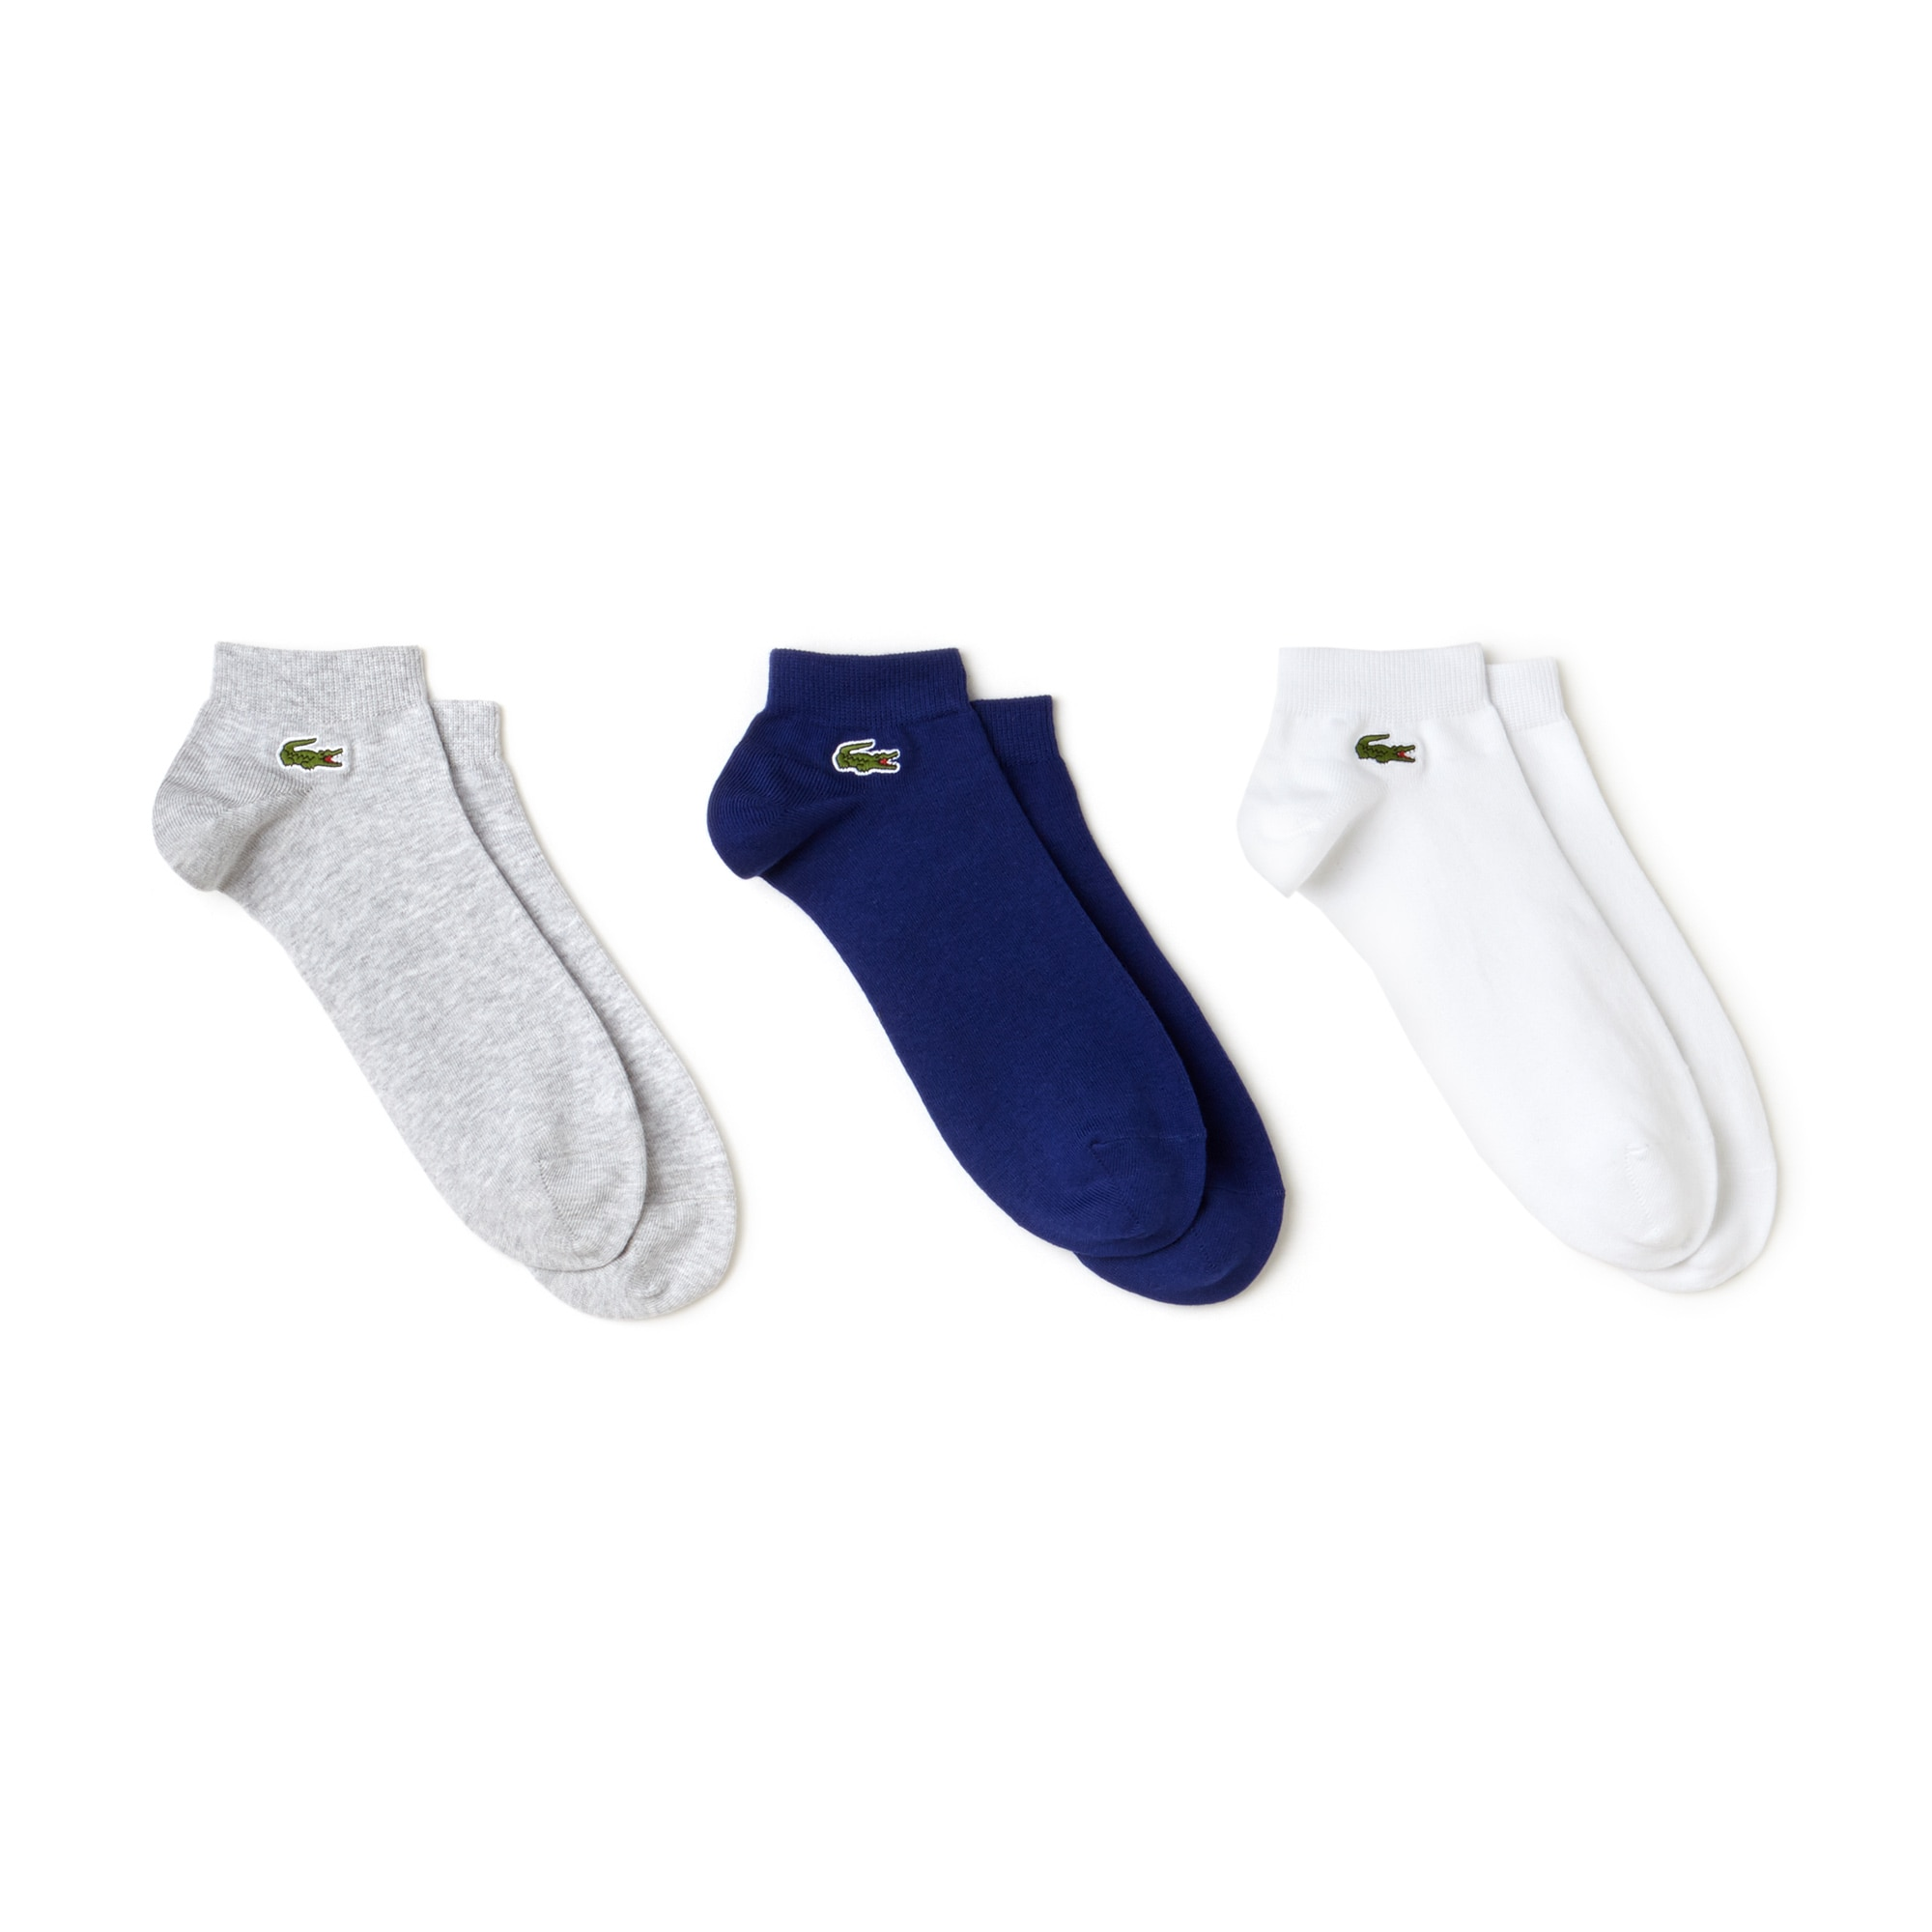 Men's Three-pack of Lacoste SPORT low-cut socks in solid jersey